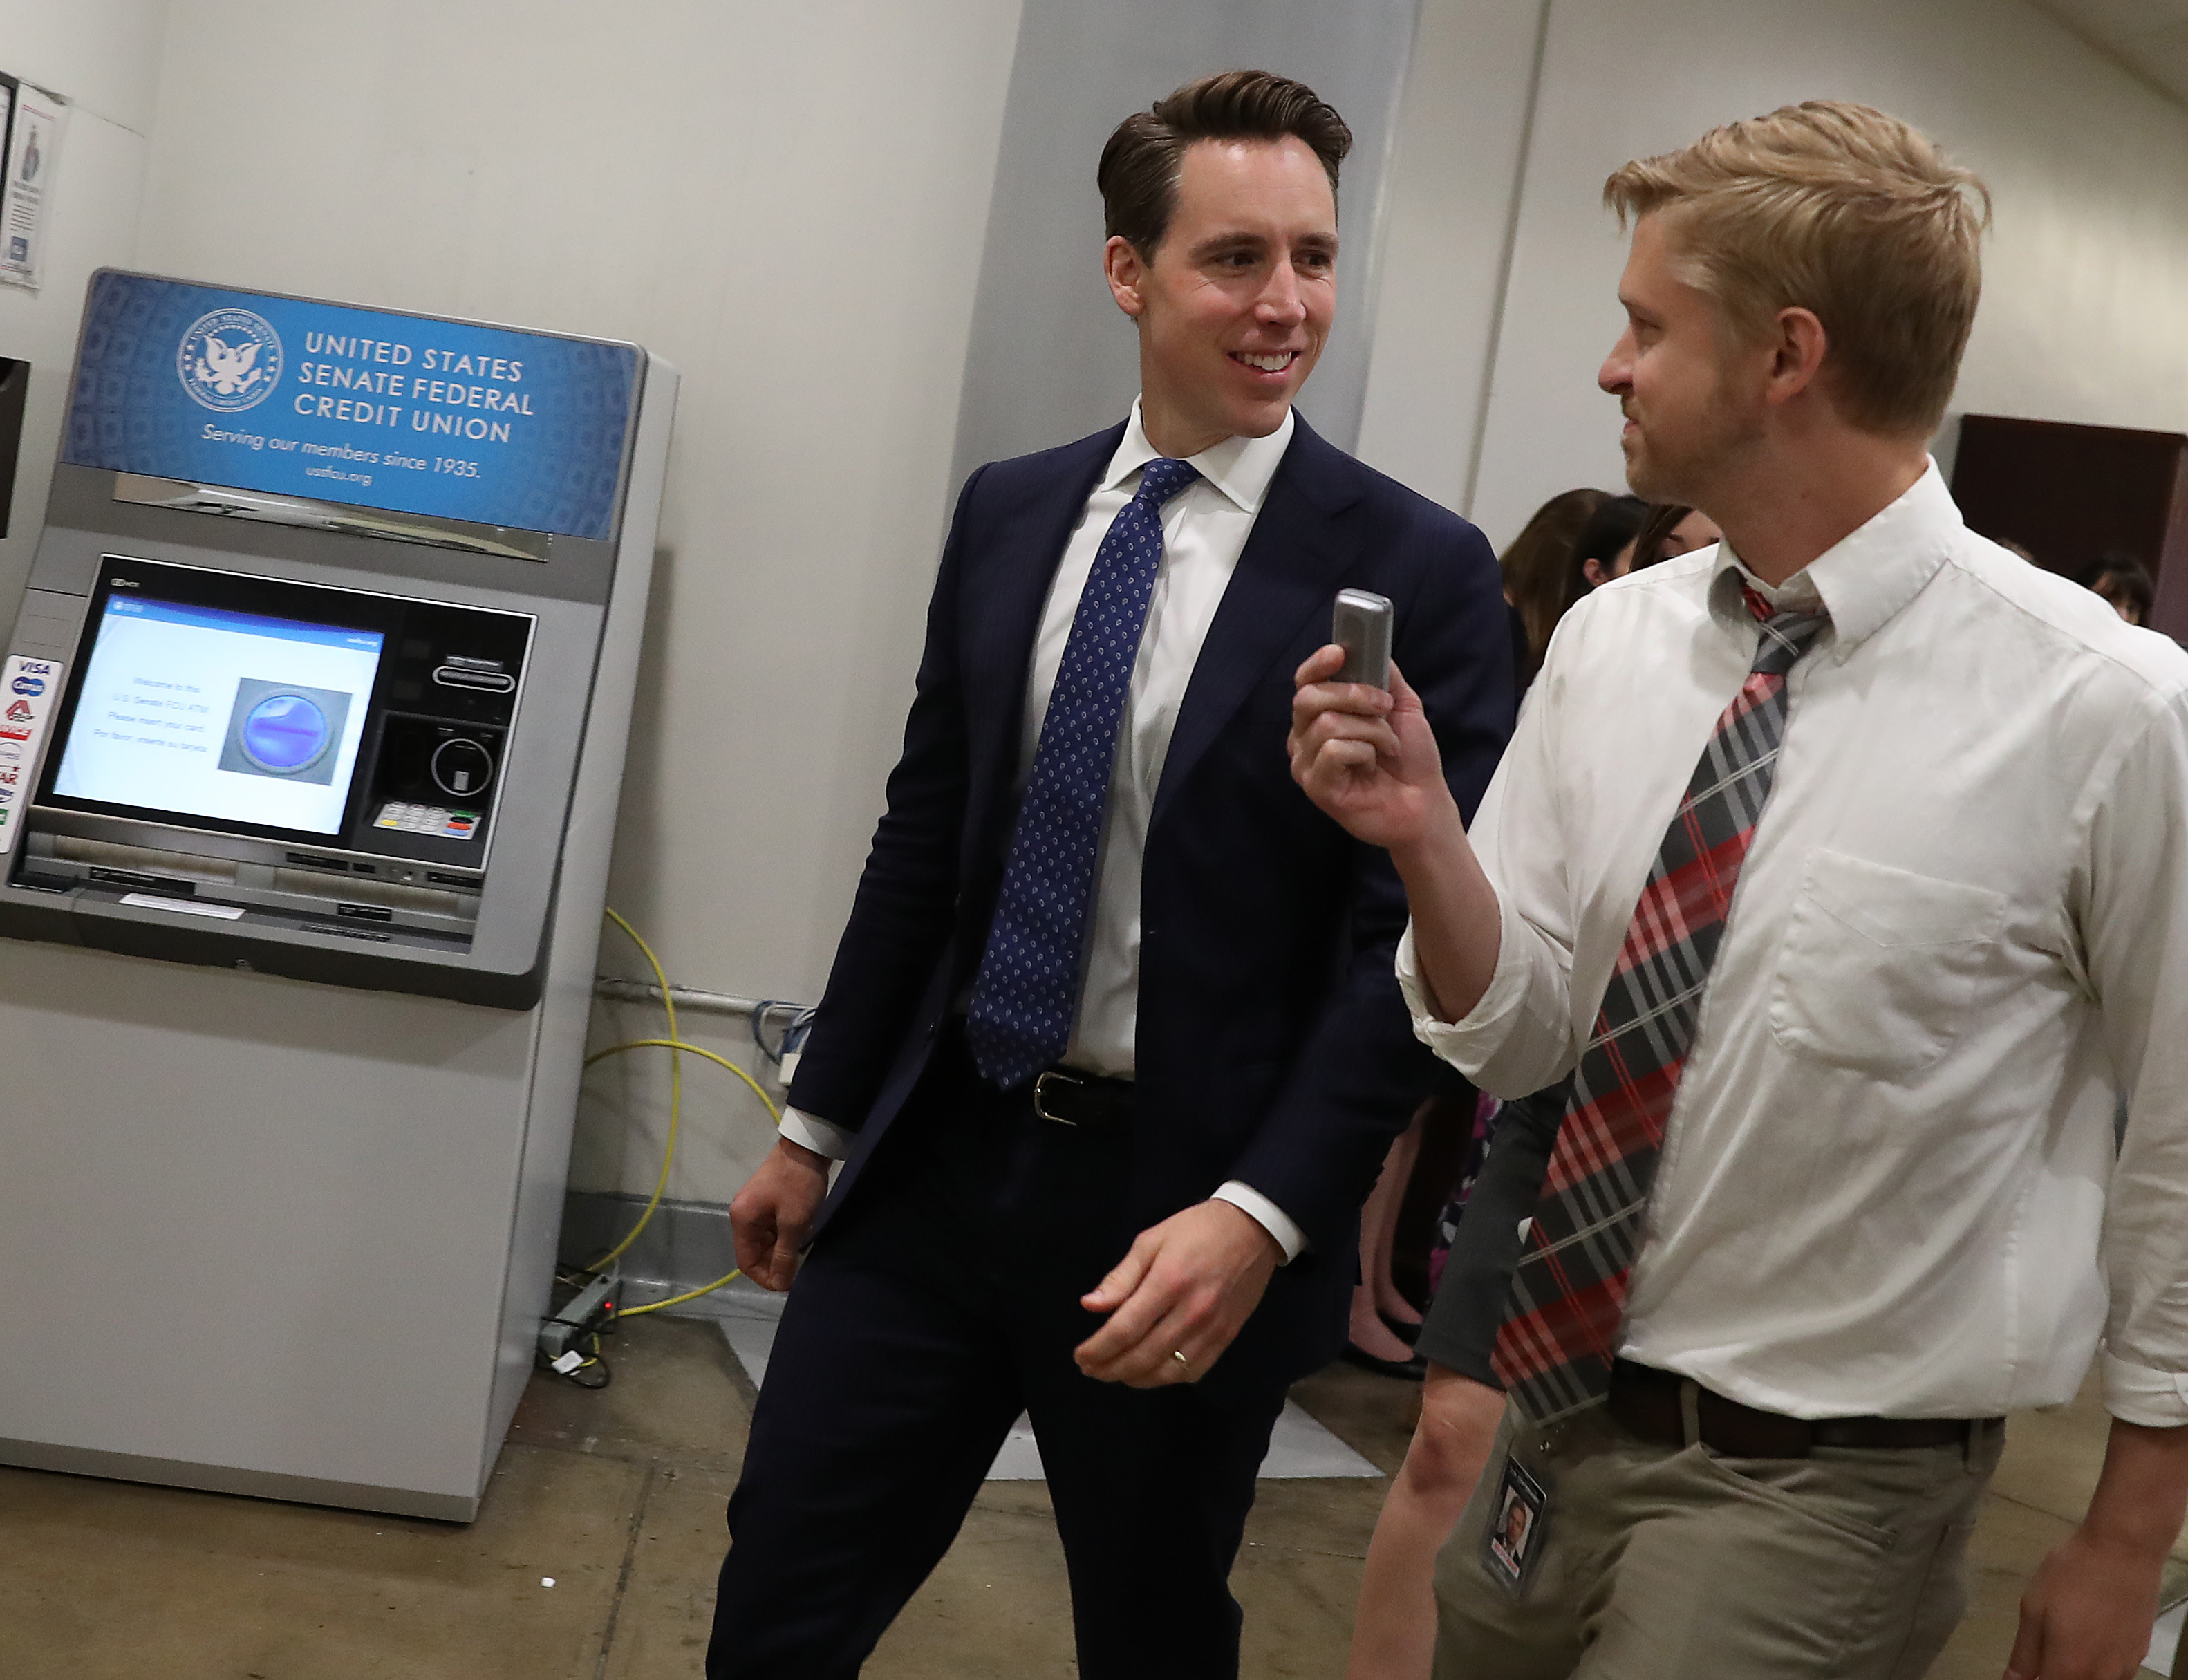 Senator Josh Hawley speaks to a reporter in a hallway.